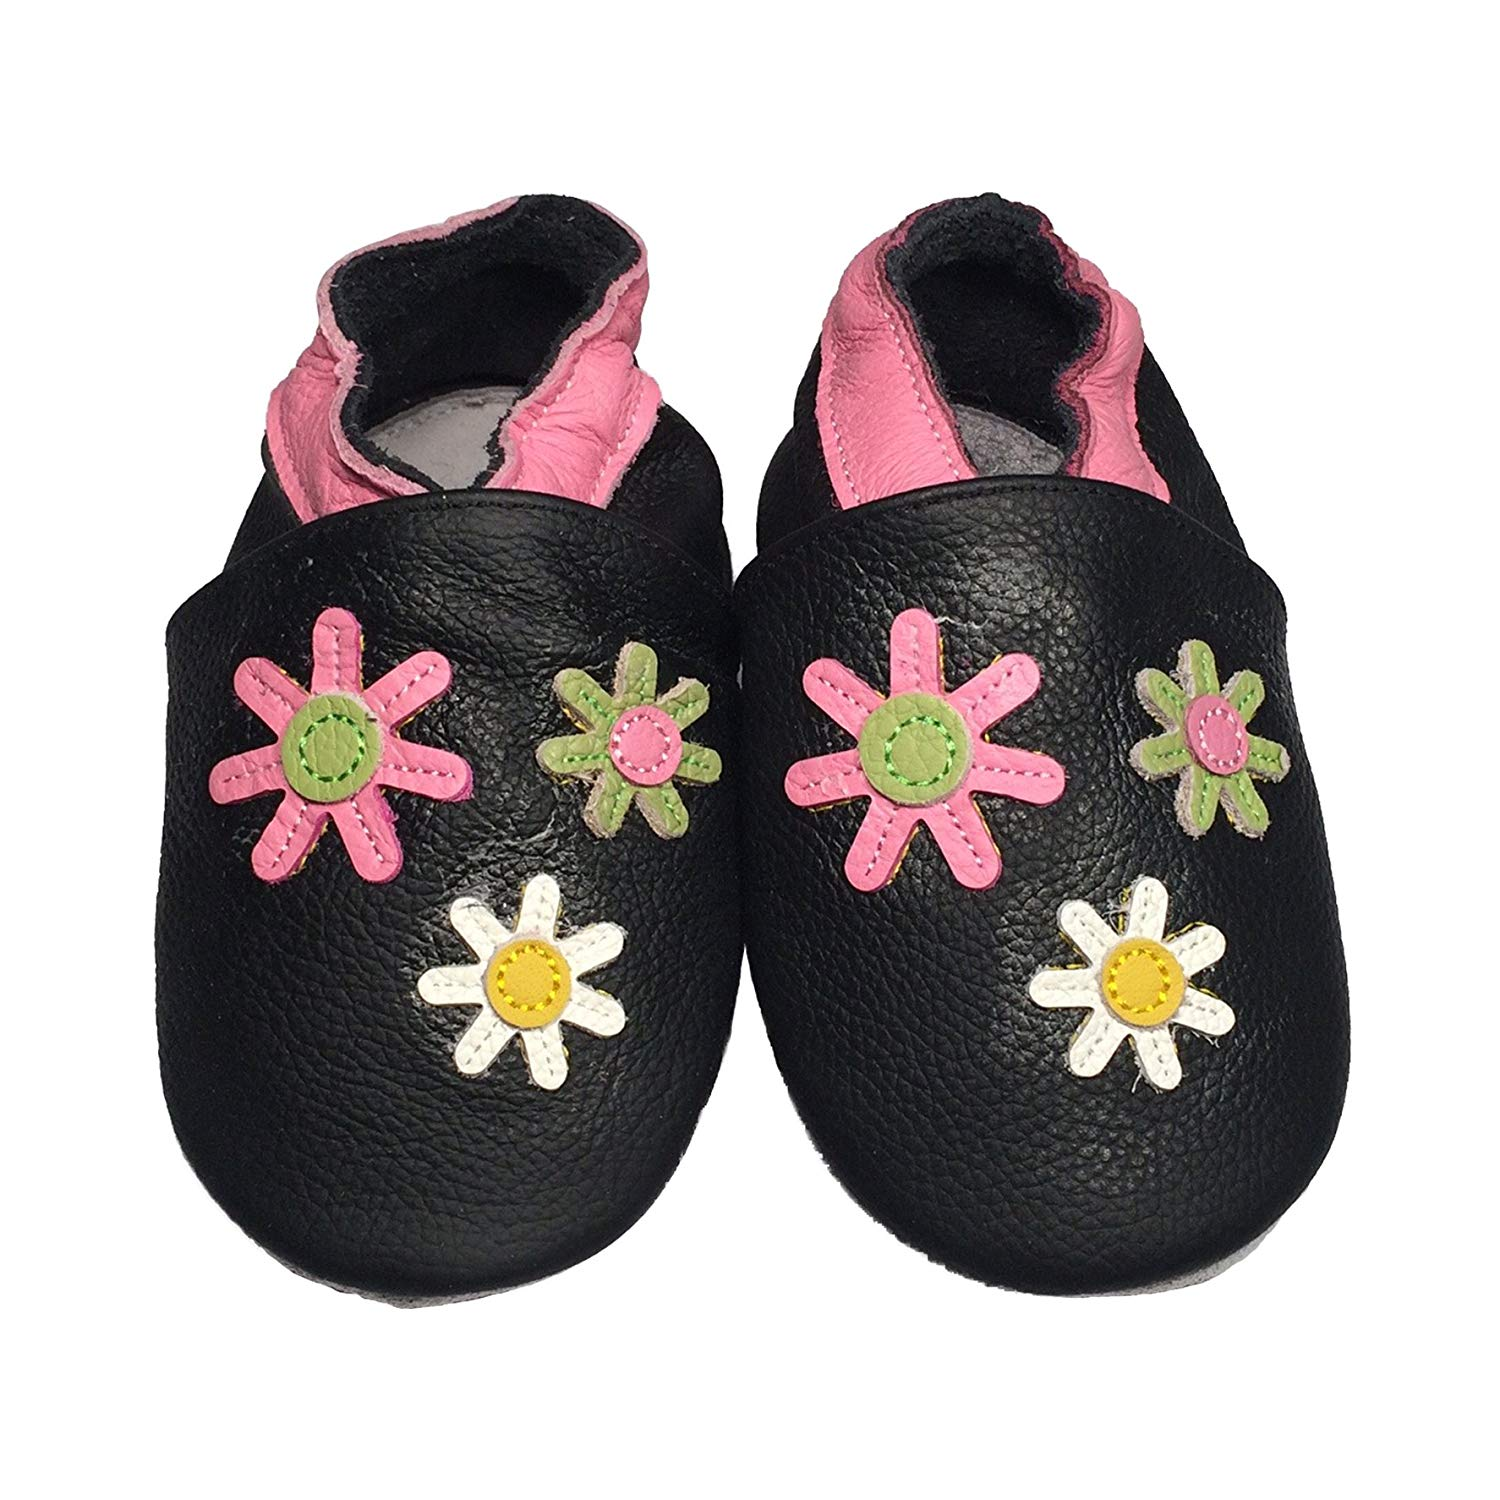 9ebc76a3407e7 Cheap Infant Leather, find Infant Leather deals on line at Alibaba.com